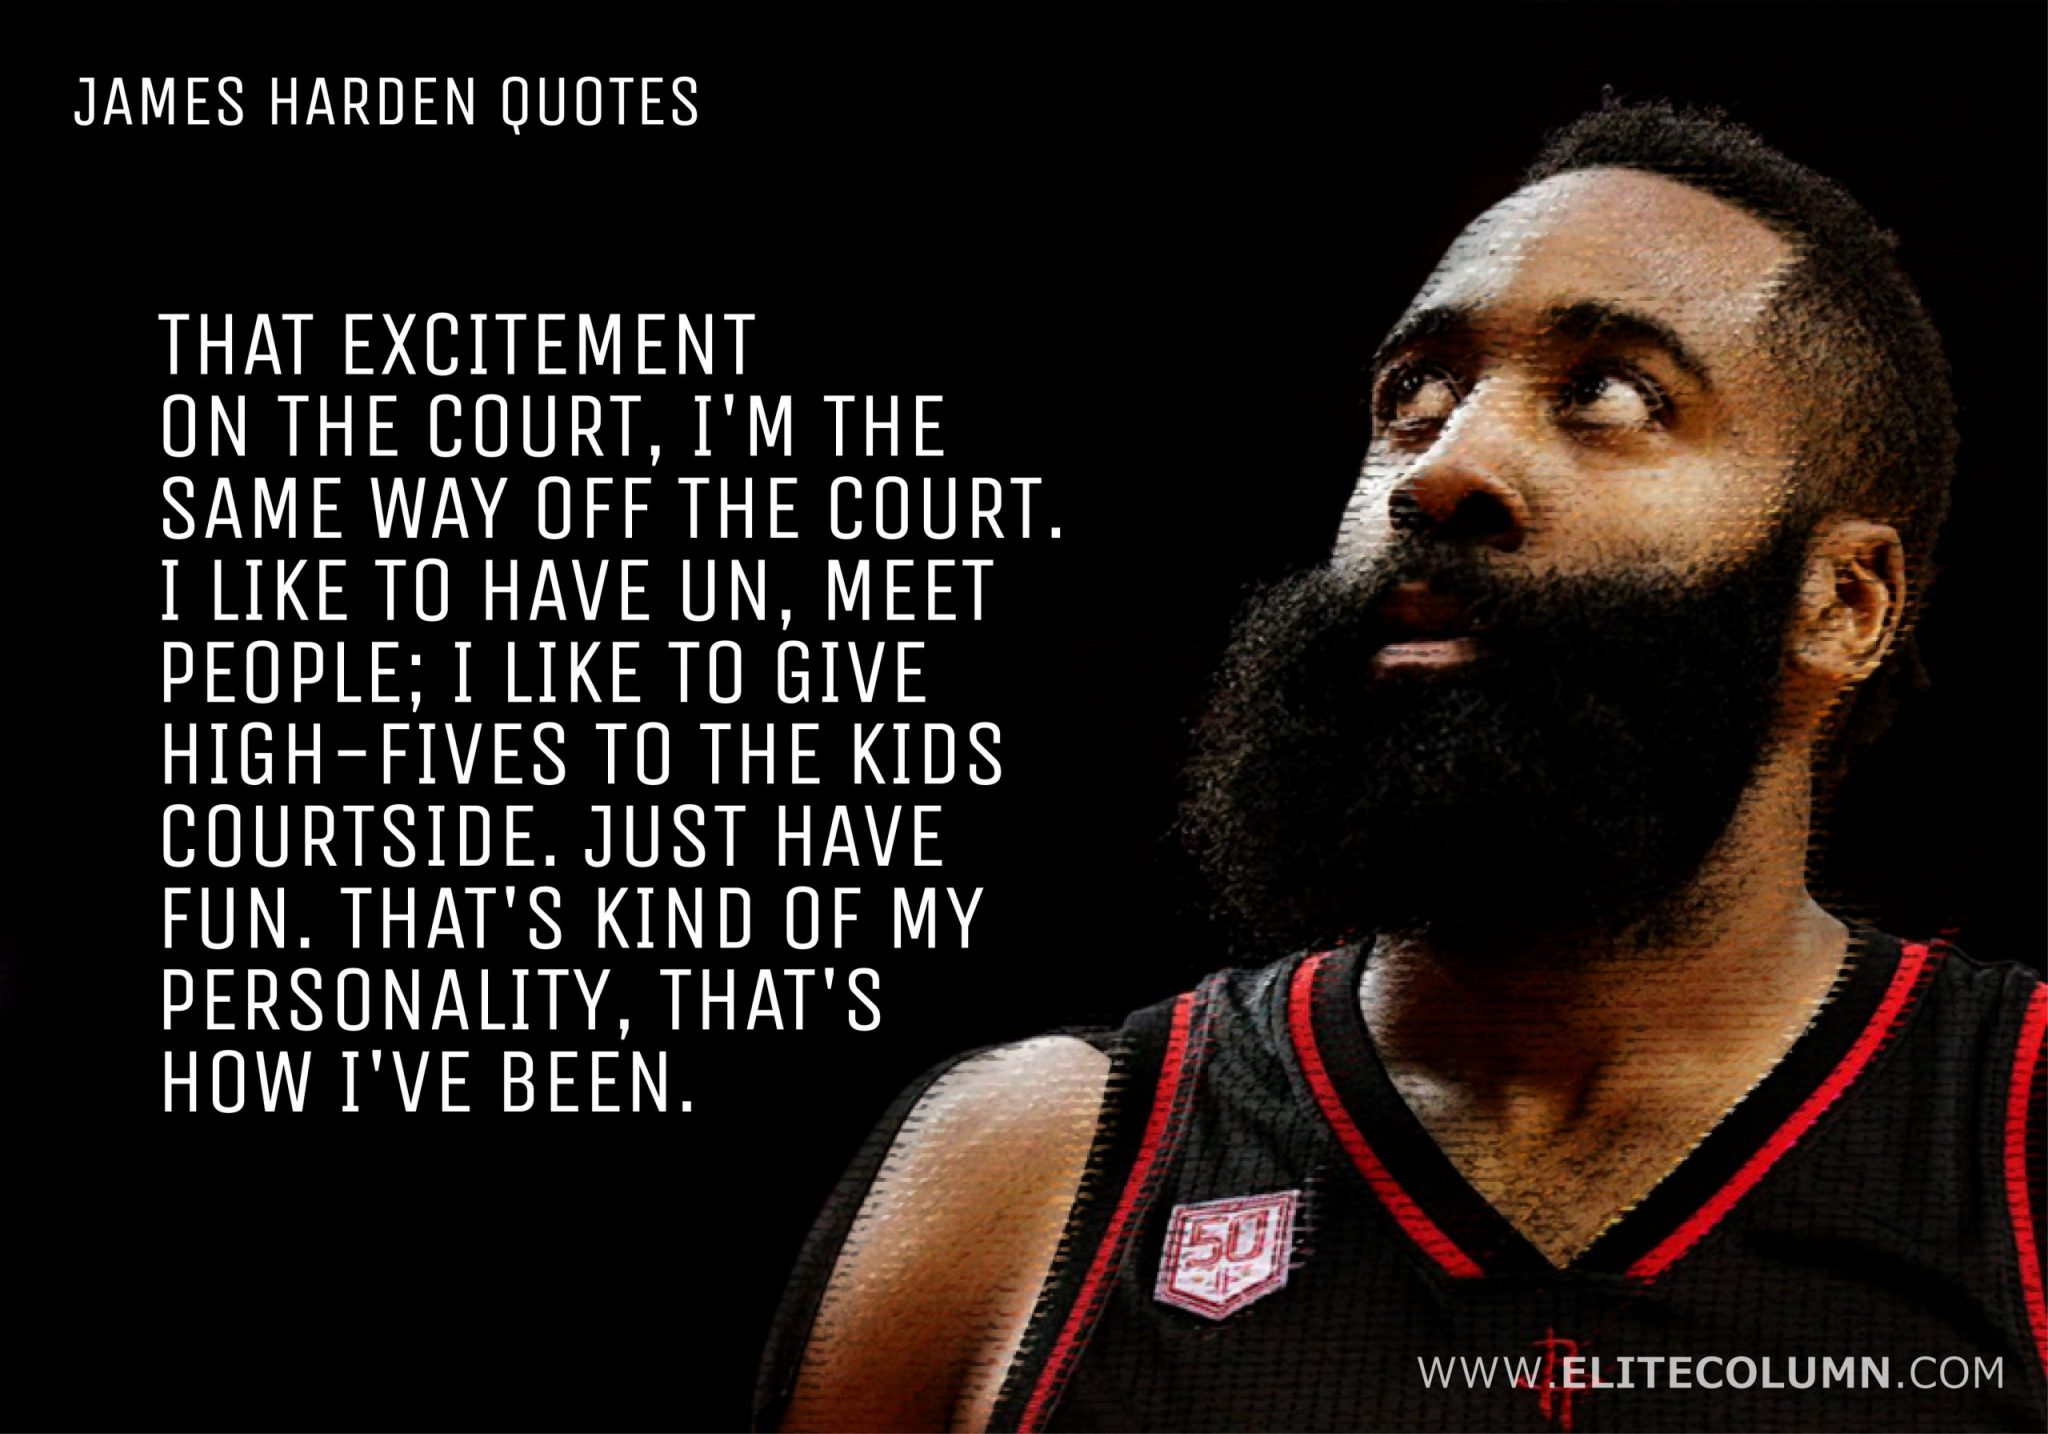 James Harden Quotes (1)